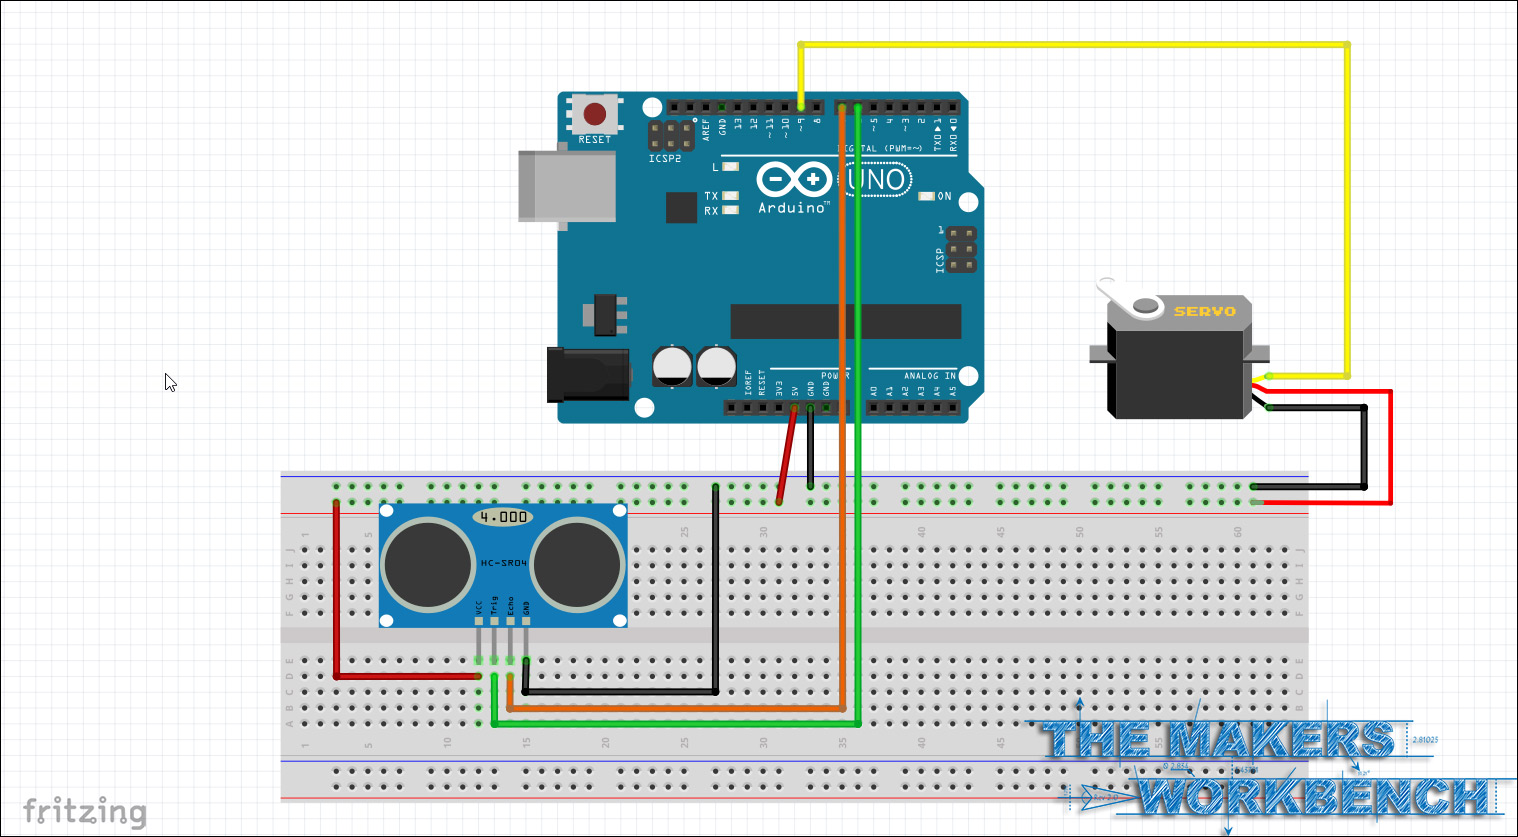 Triggering A Servo Using An Hc Sr04 Distance Sensor And Arduino Ultrasonic Circuit Wiring Up The